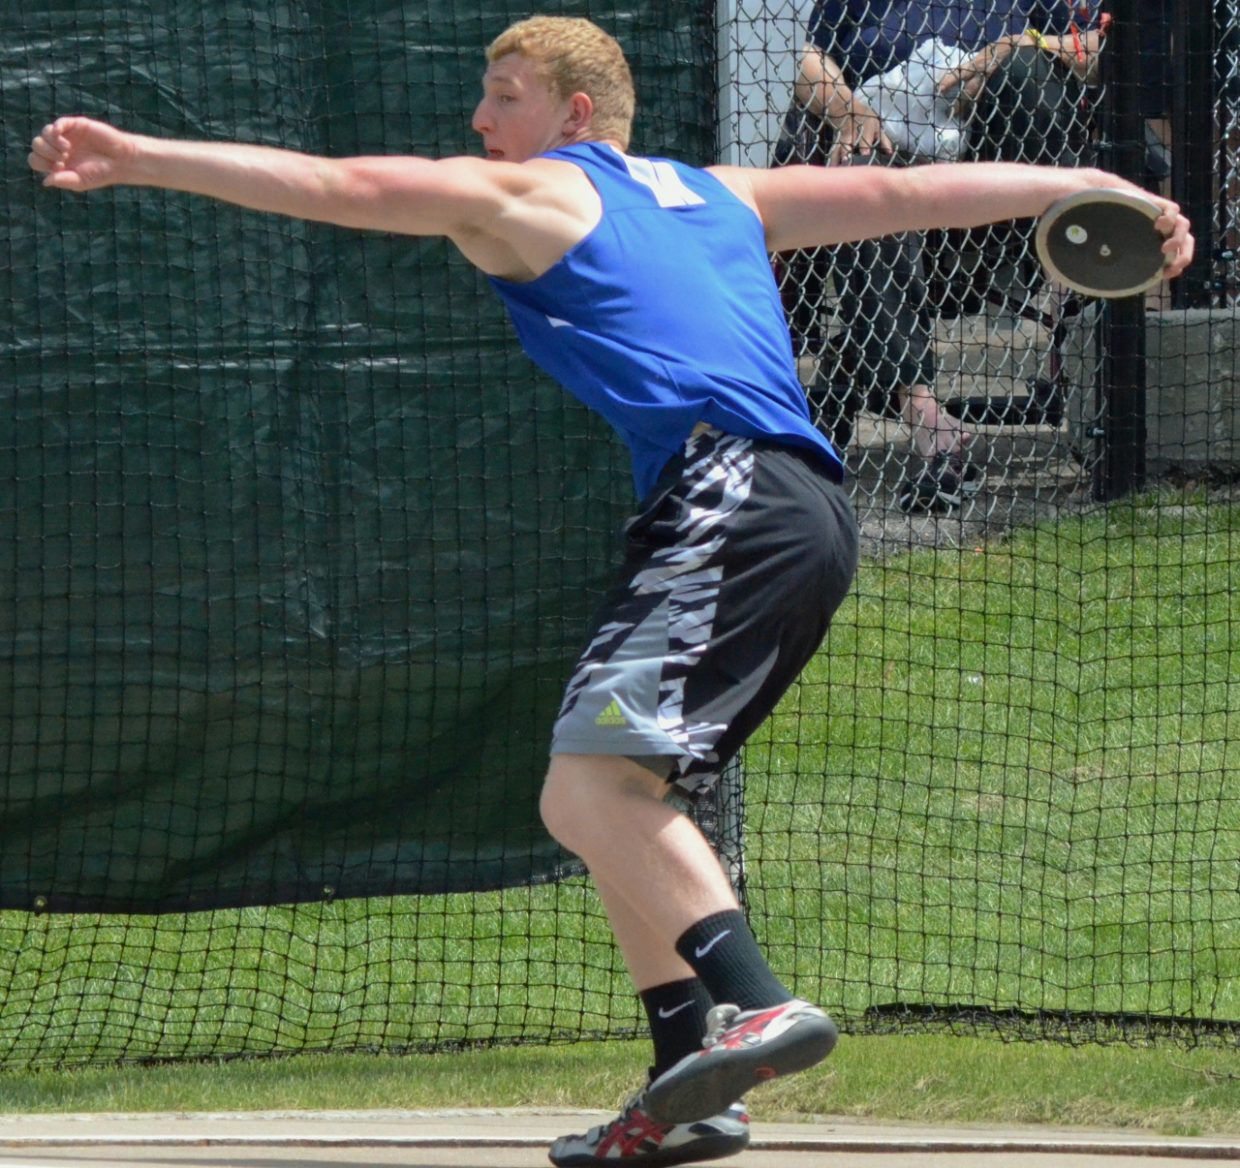 Moffat County High School's Keenan Hildebrandt gets ready to unleash his throw in the boys discus of the State Track and Field Championships. Hildebrandt placed third in the event.